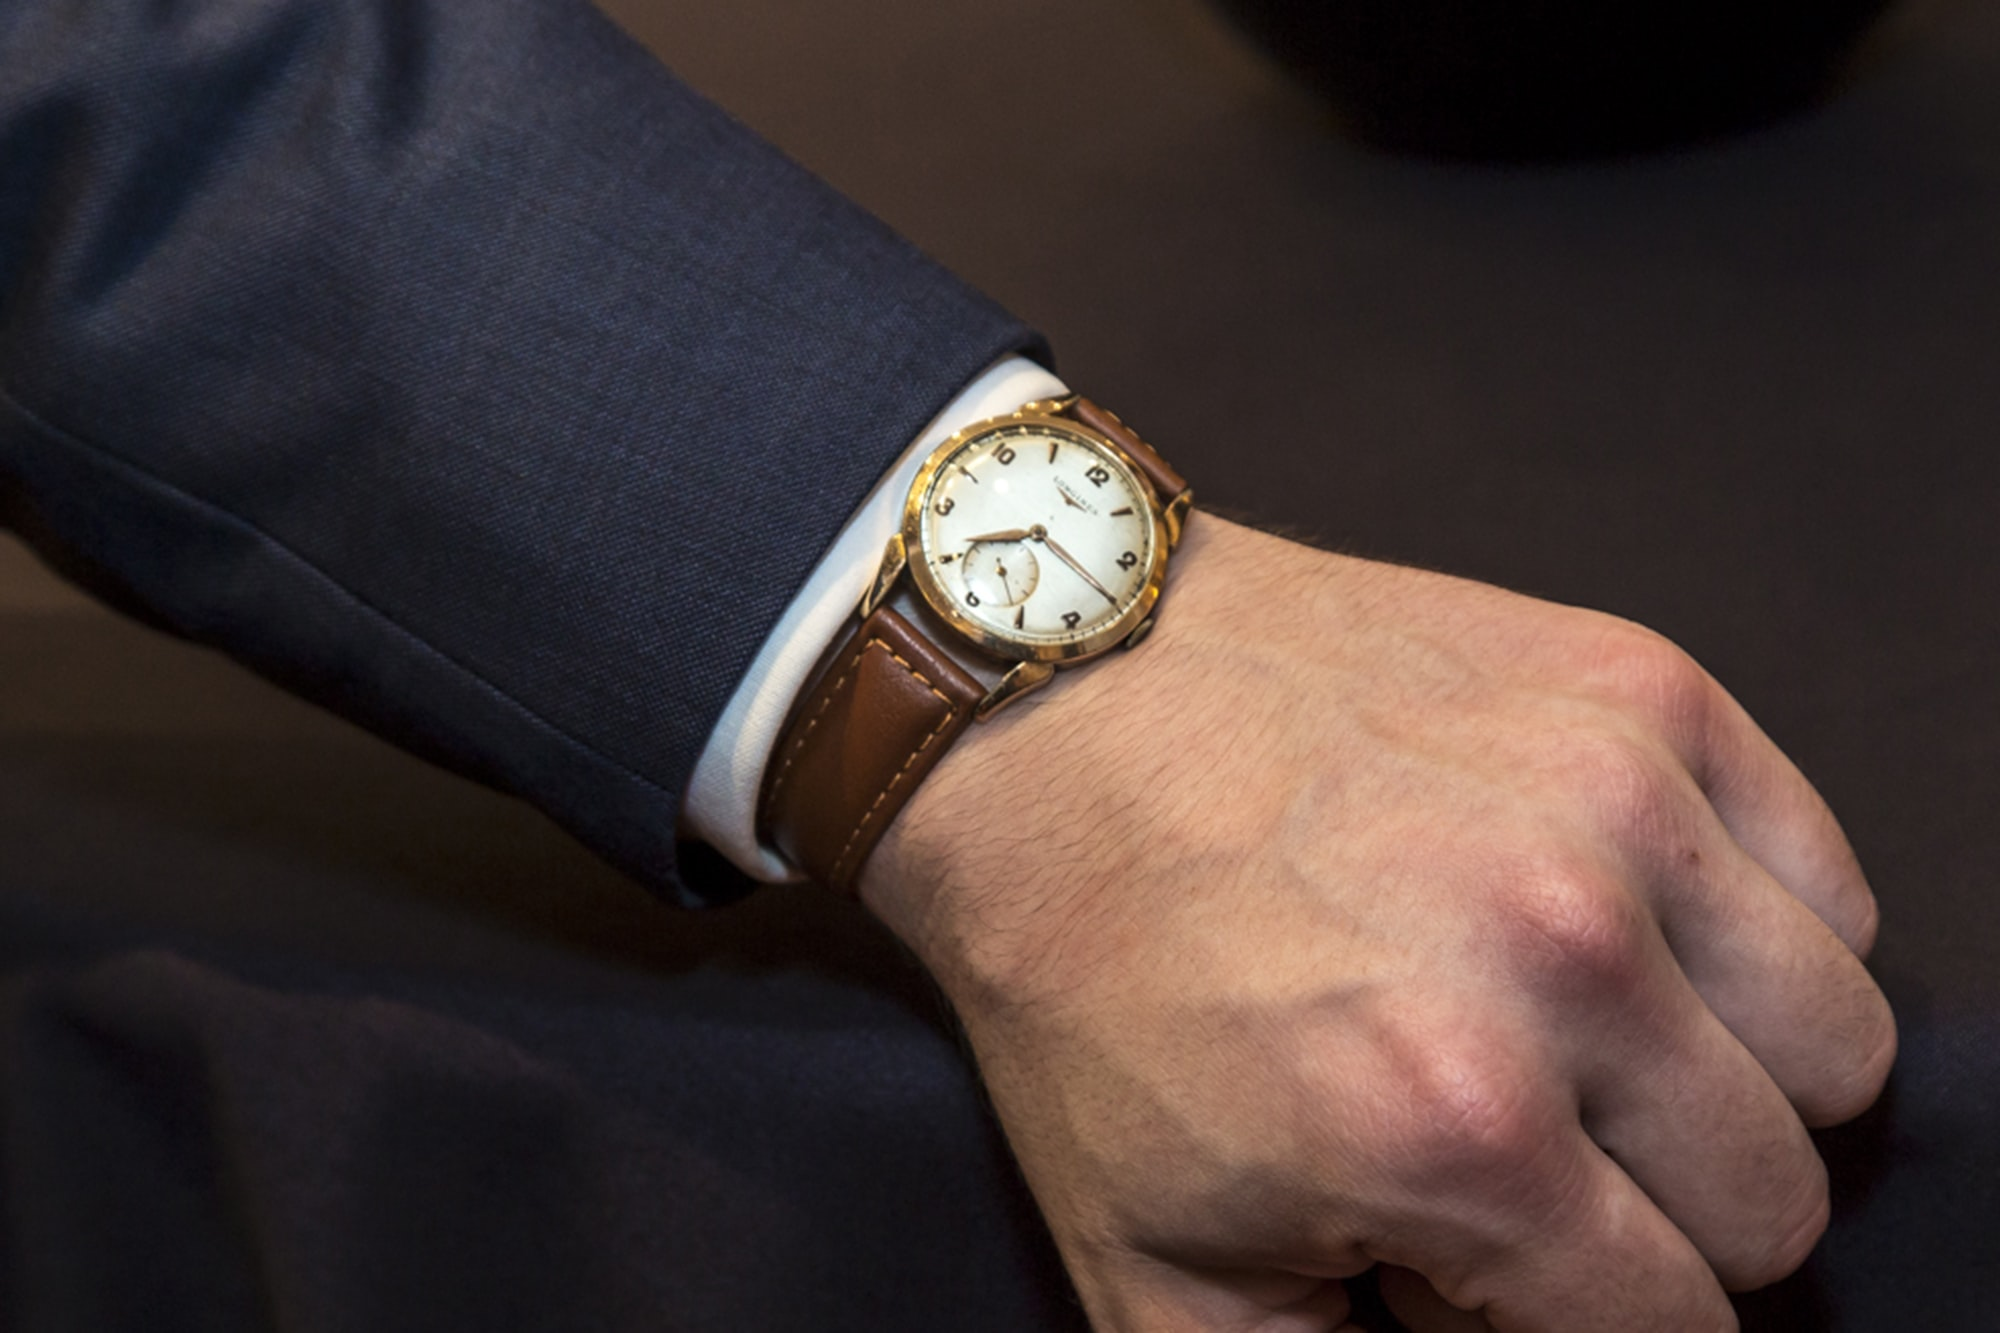 Photo Report: HODINKEE Hosts A Collector Get-Together At The Wempe Boutique In London Photo Report: HODINKEE Hosts A Collector Get-Together At The Wempe Boutique In London 6